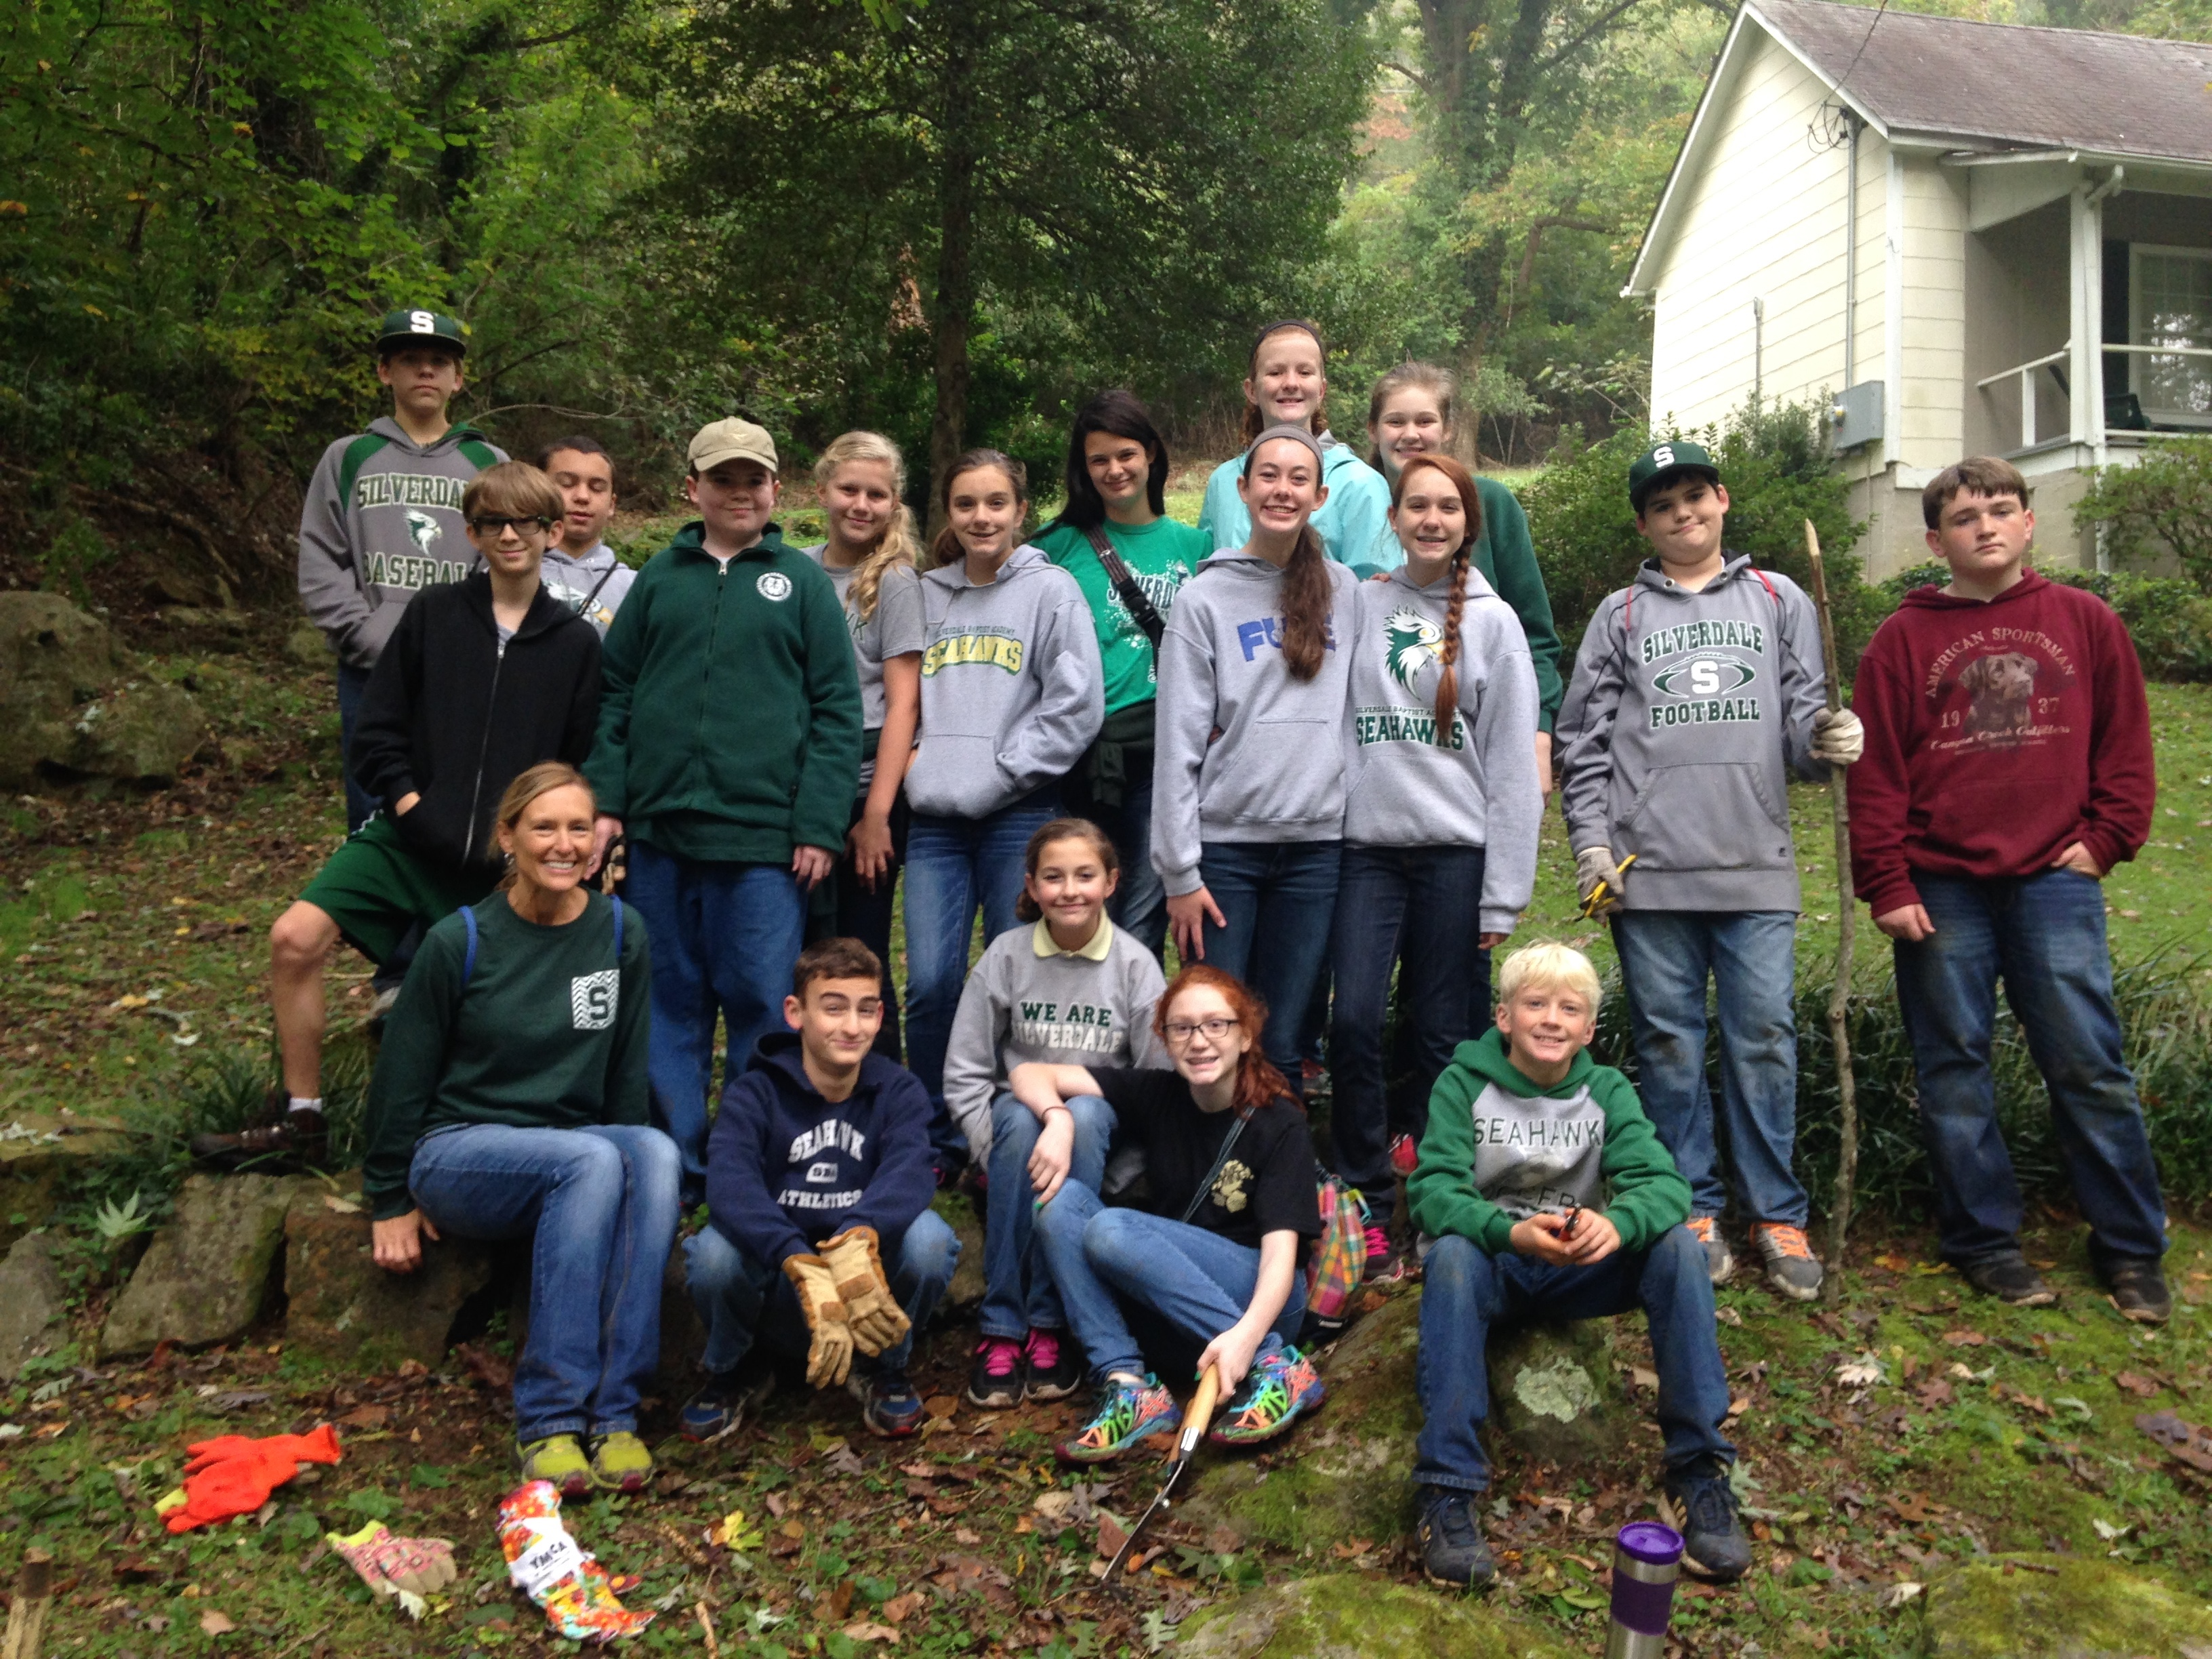 Silverdale 7th Grade Class volunteers to maintain trails in Chattanooga